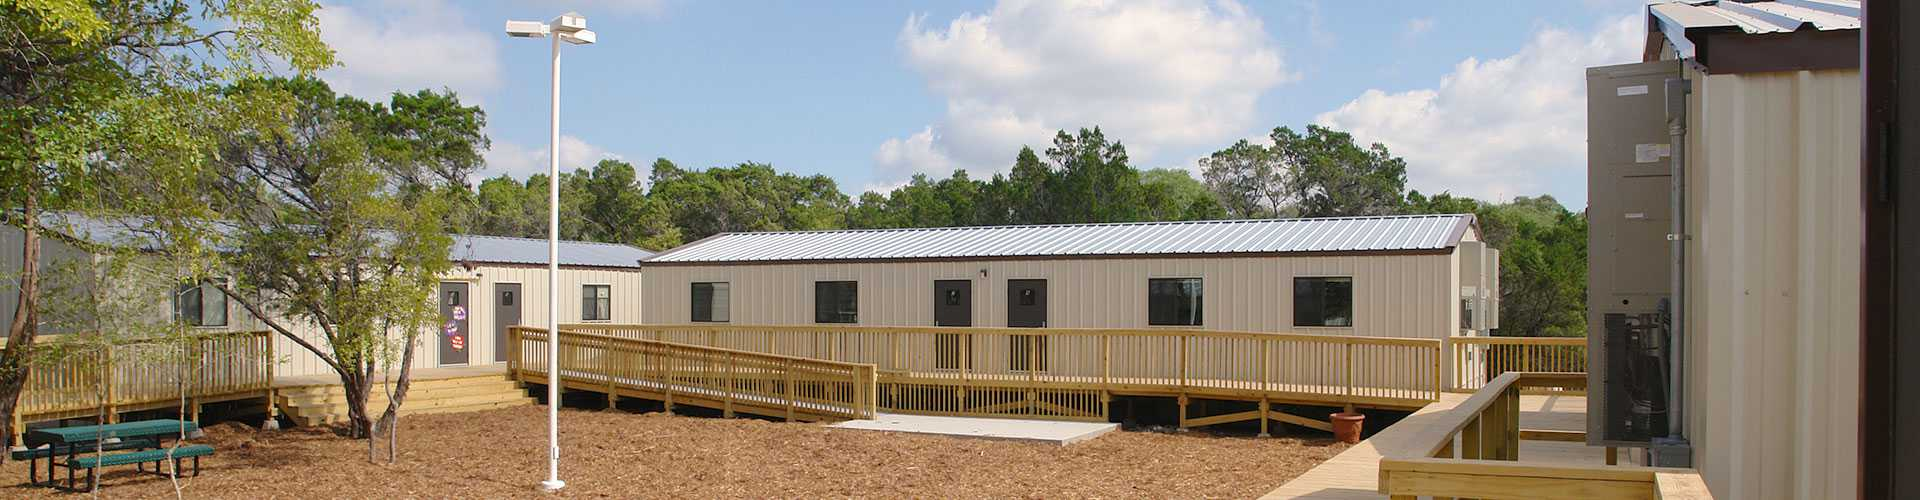 Education Solution Classrooms in Arkansas Banner 1